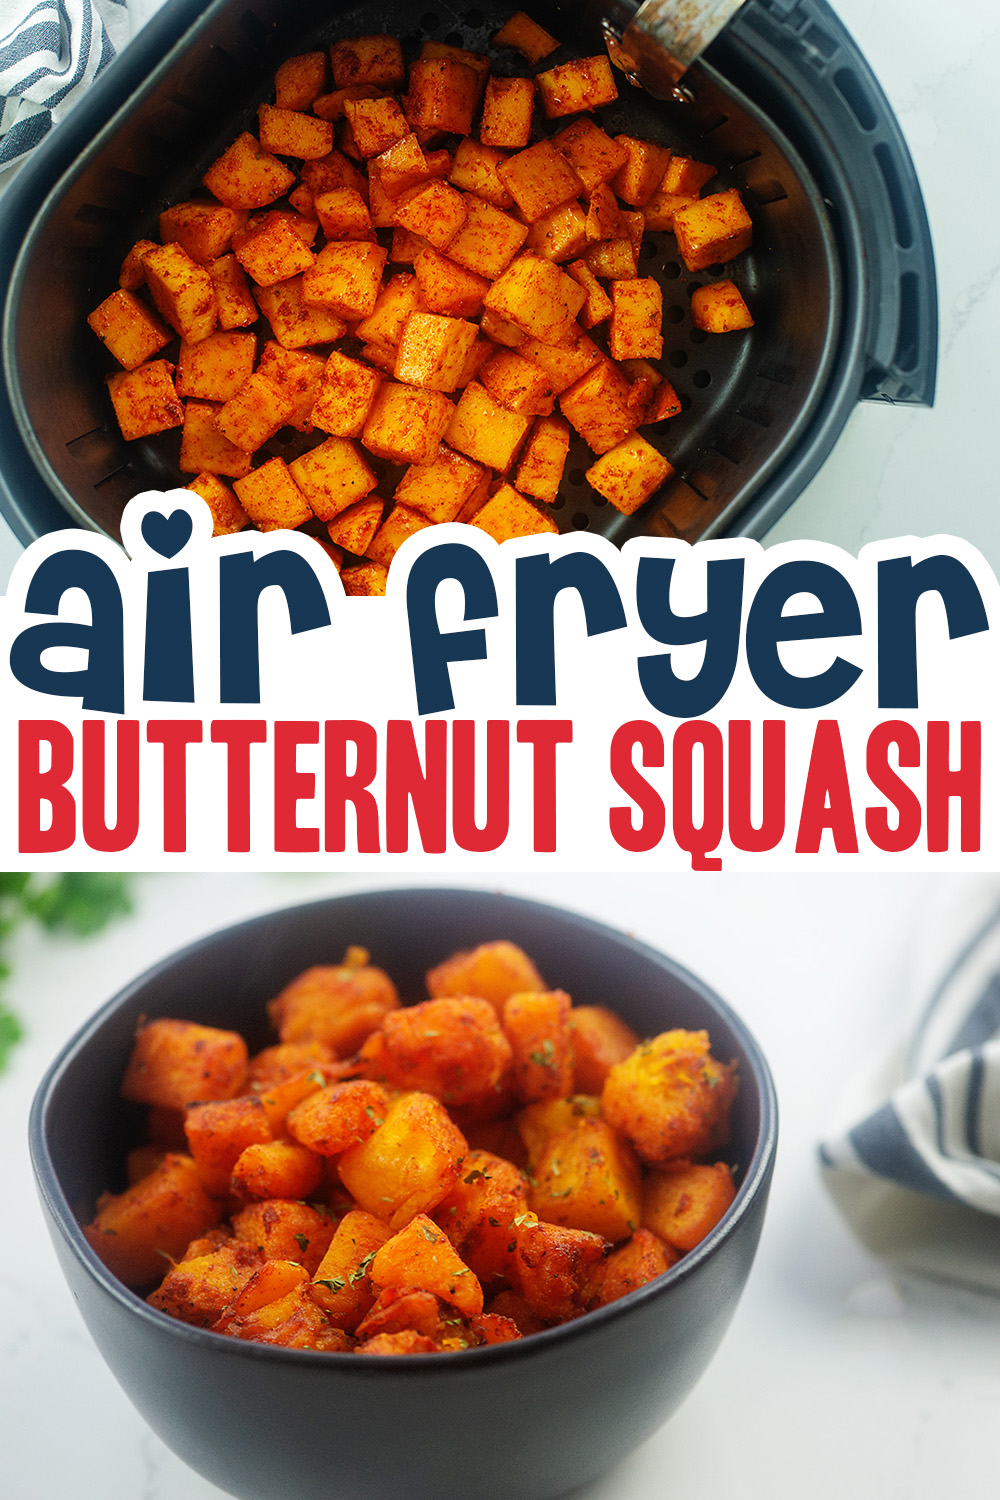 This air fryer butternut squash was easy to make and the result was magnificent!